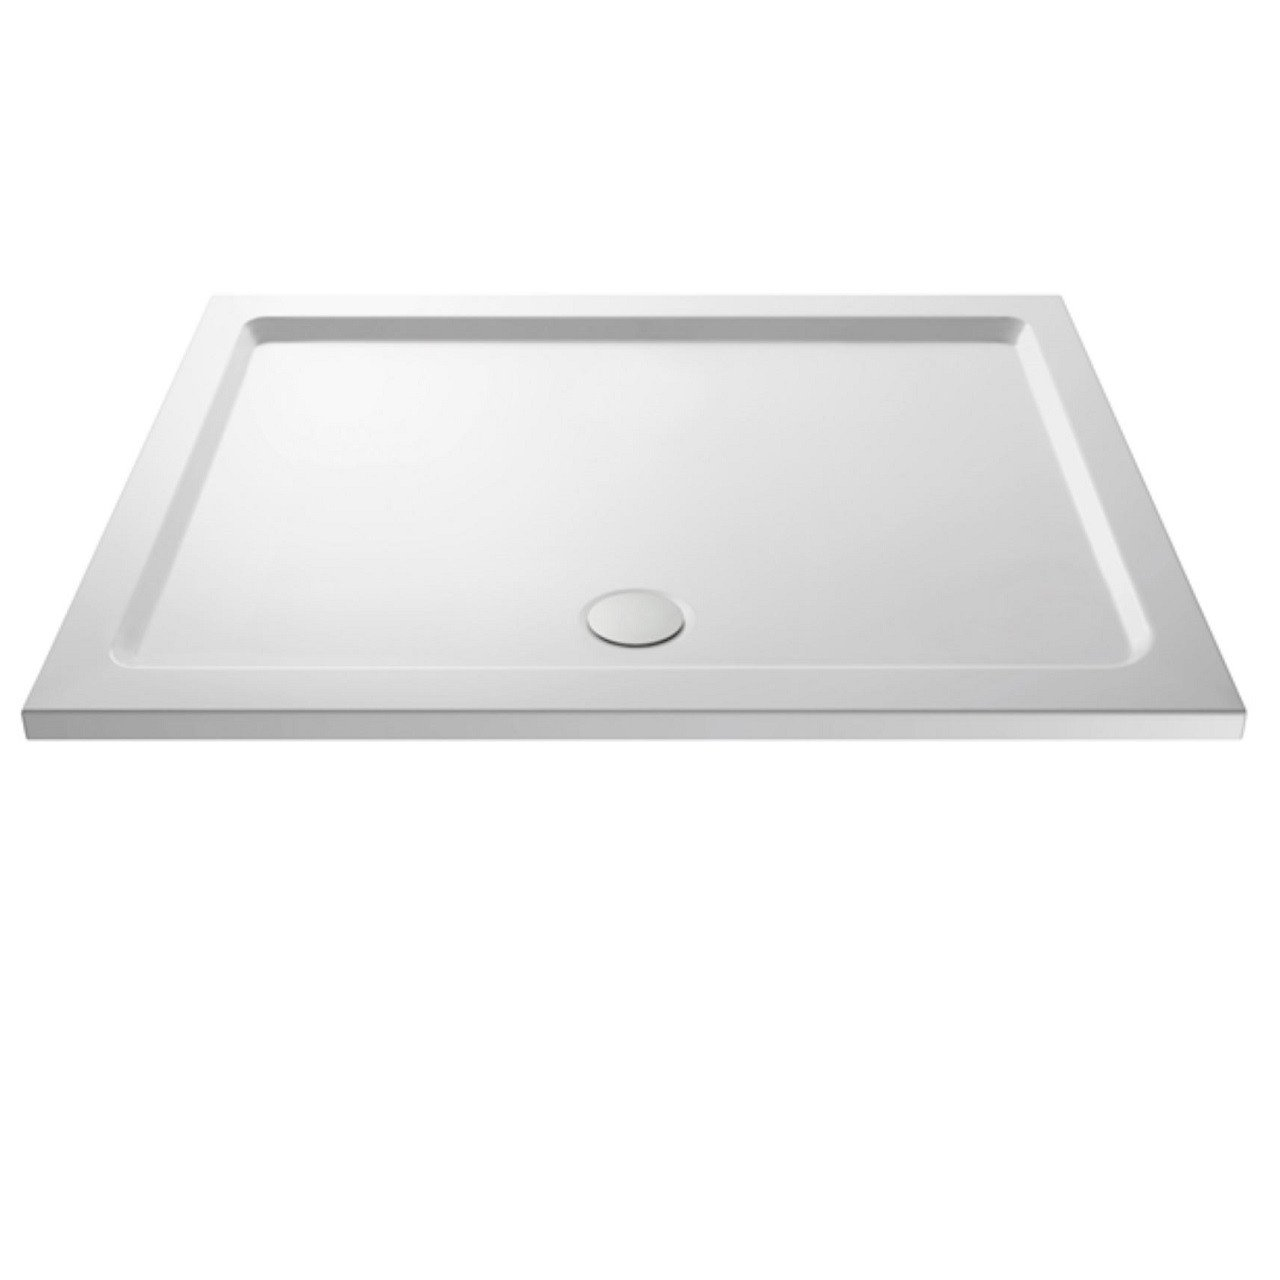 Nuie Pearlstone 1600mm x 900mm Rectangular Shower Tray with Centre Edge Waste - NTP054